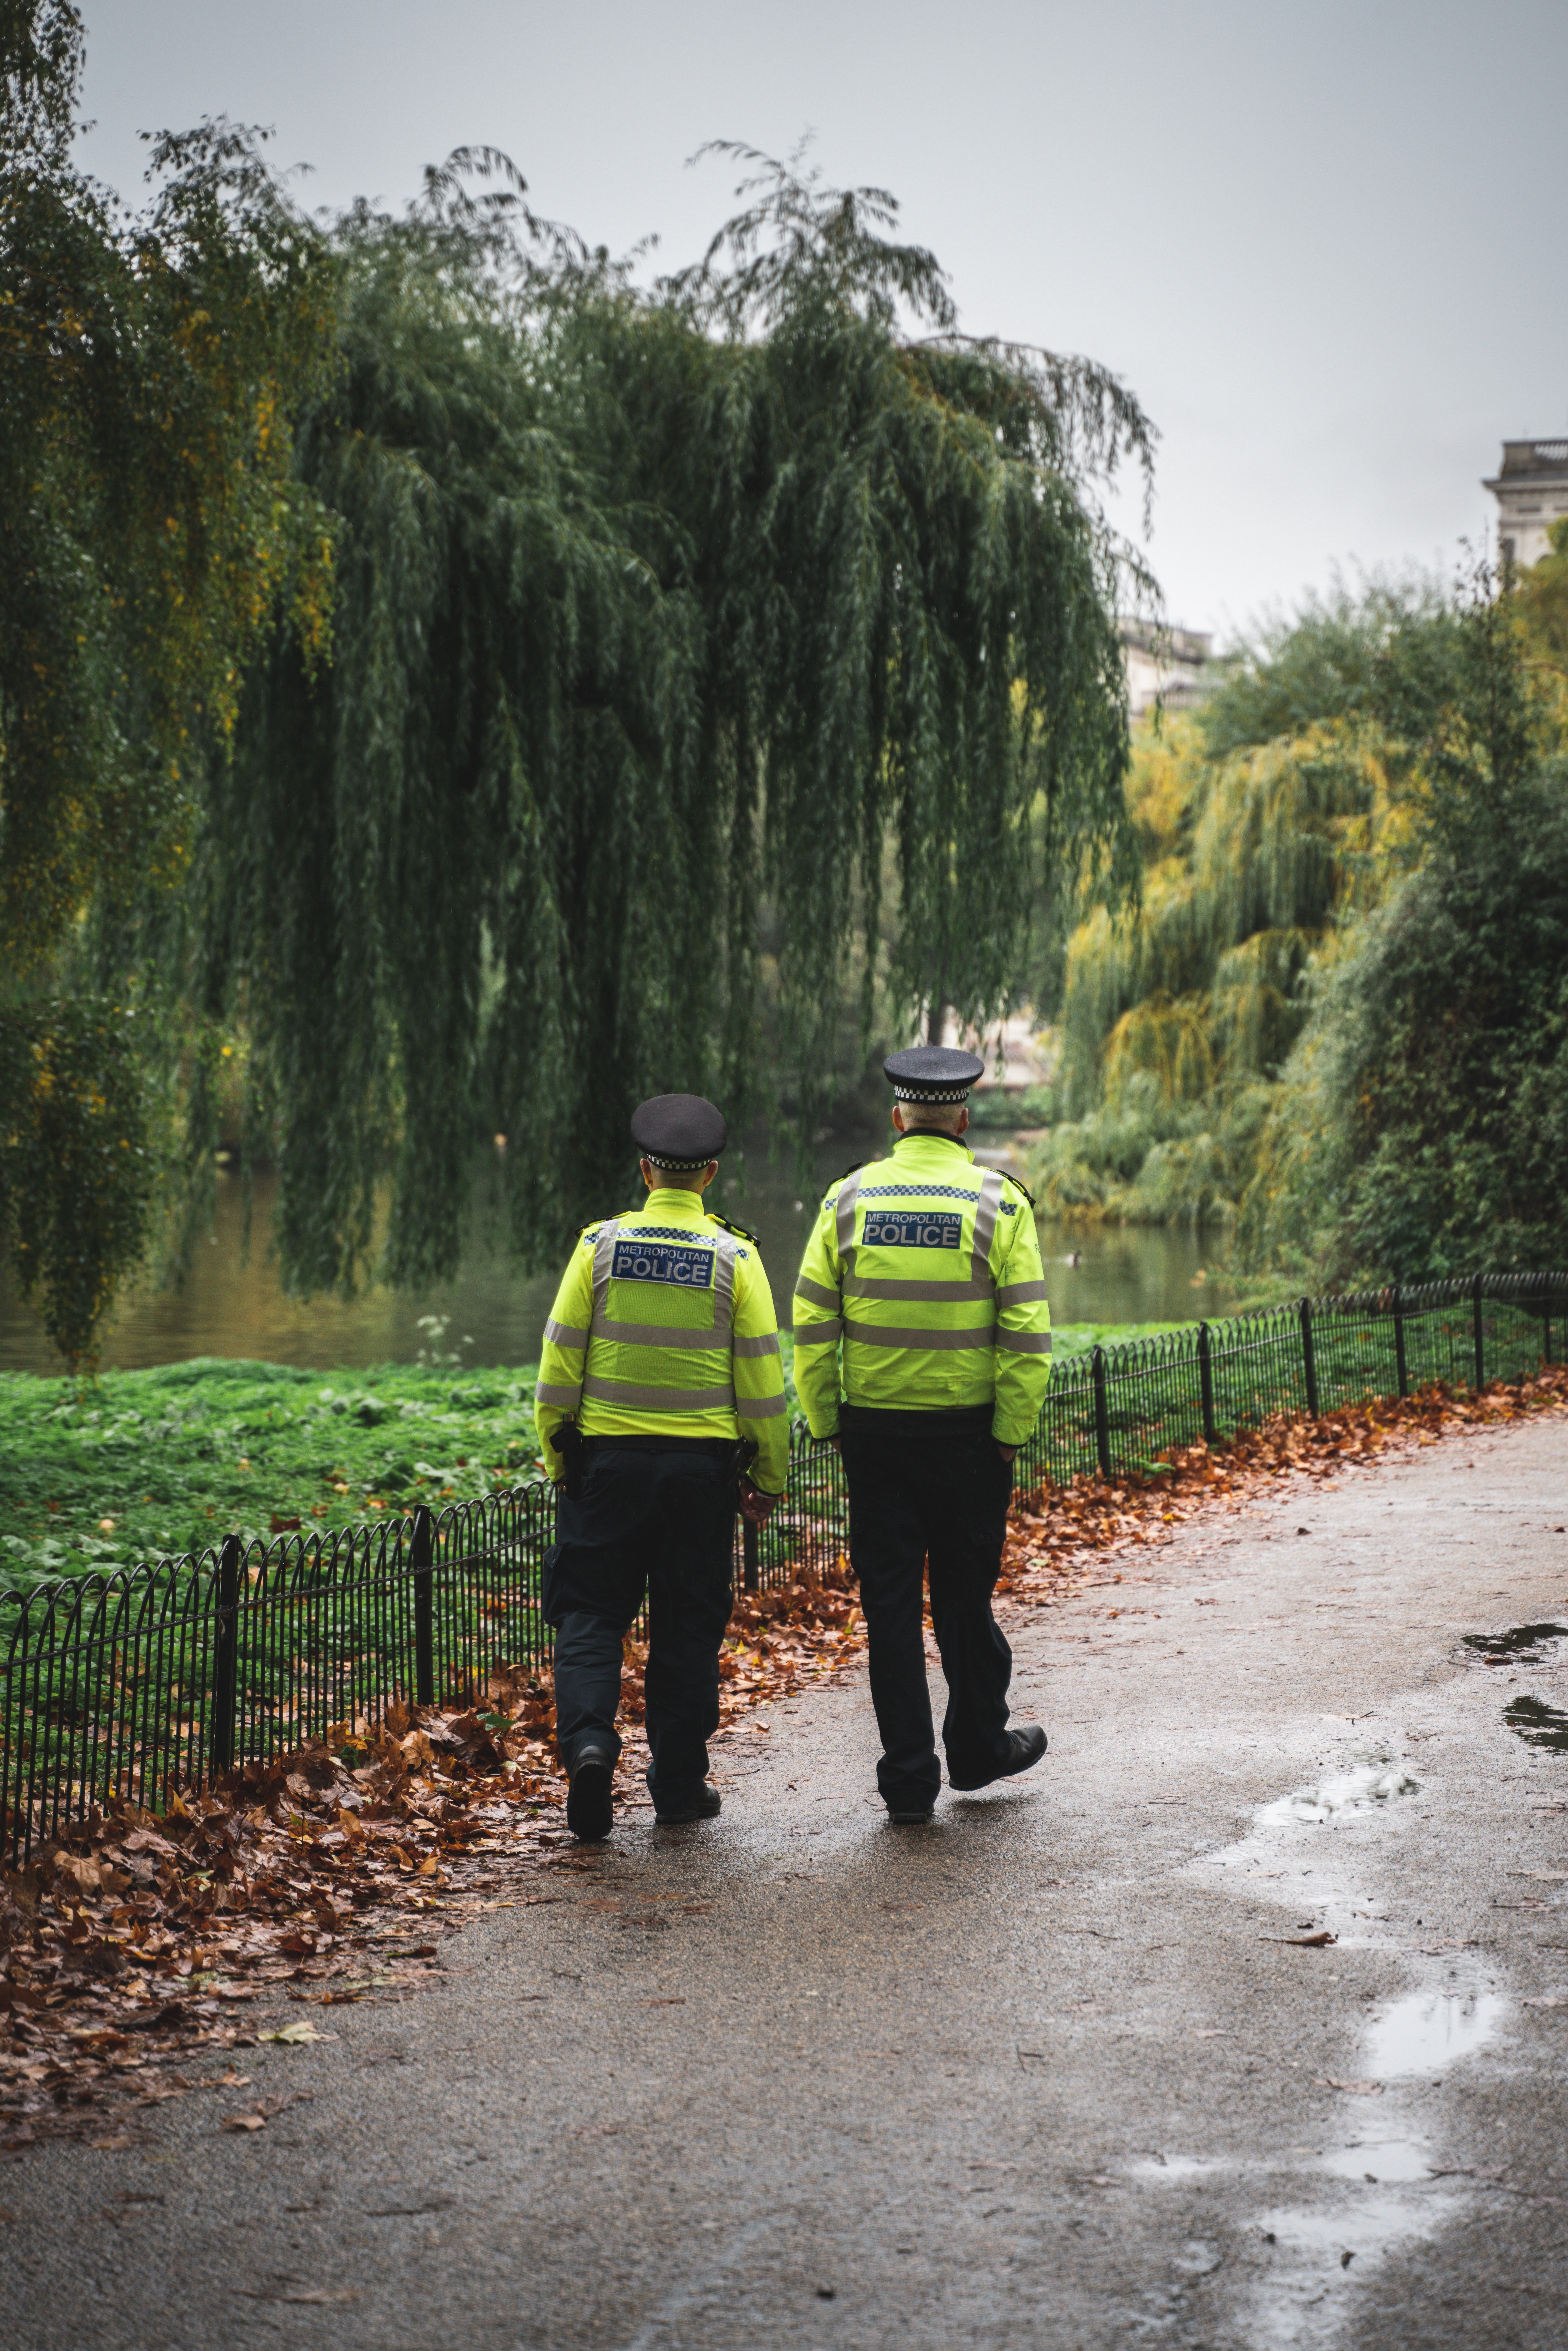 Two police officers walking along a park   Photo: Pexels